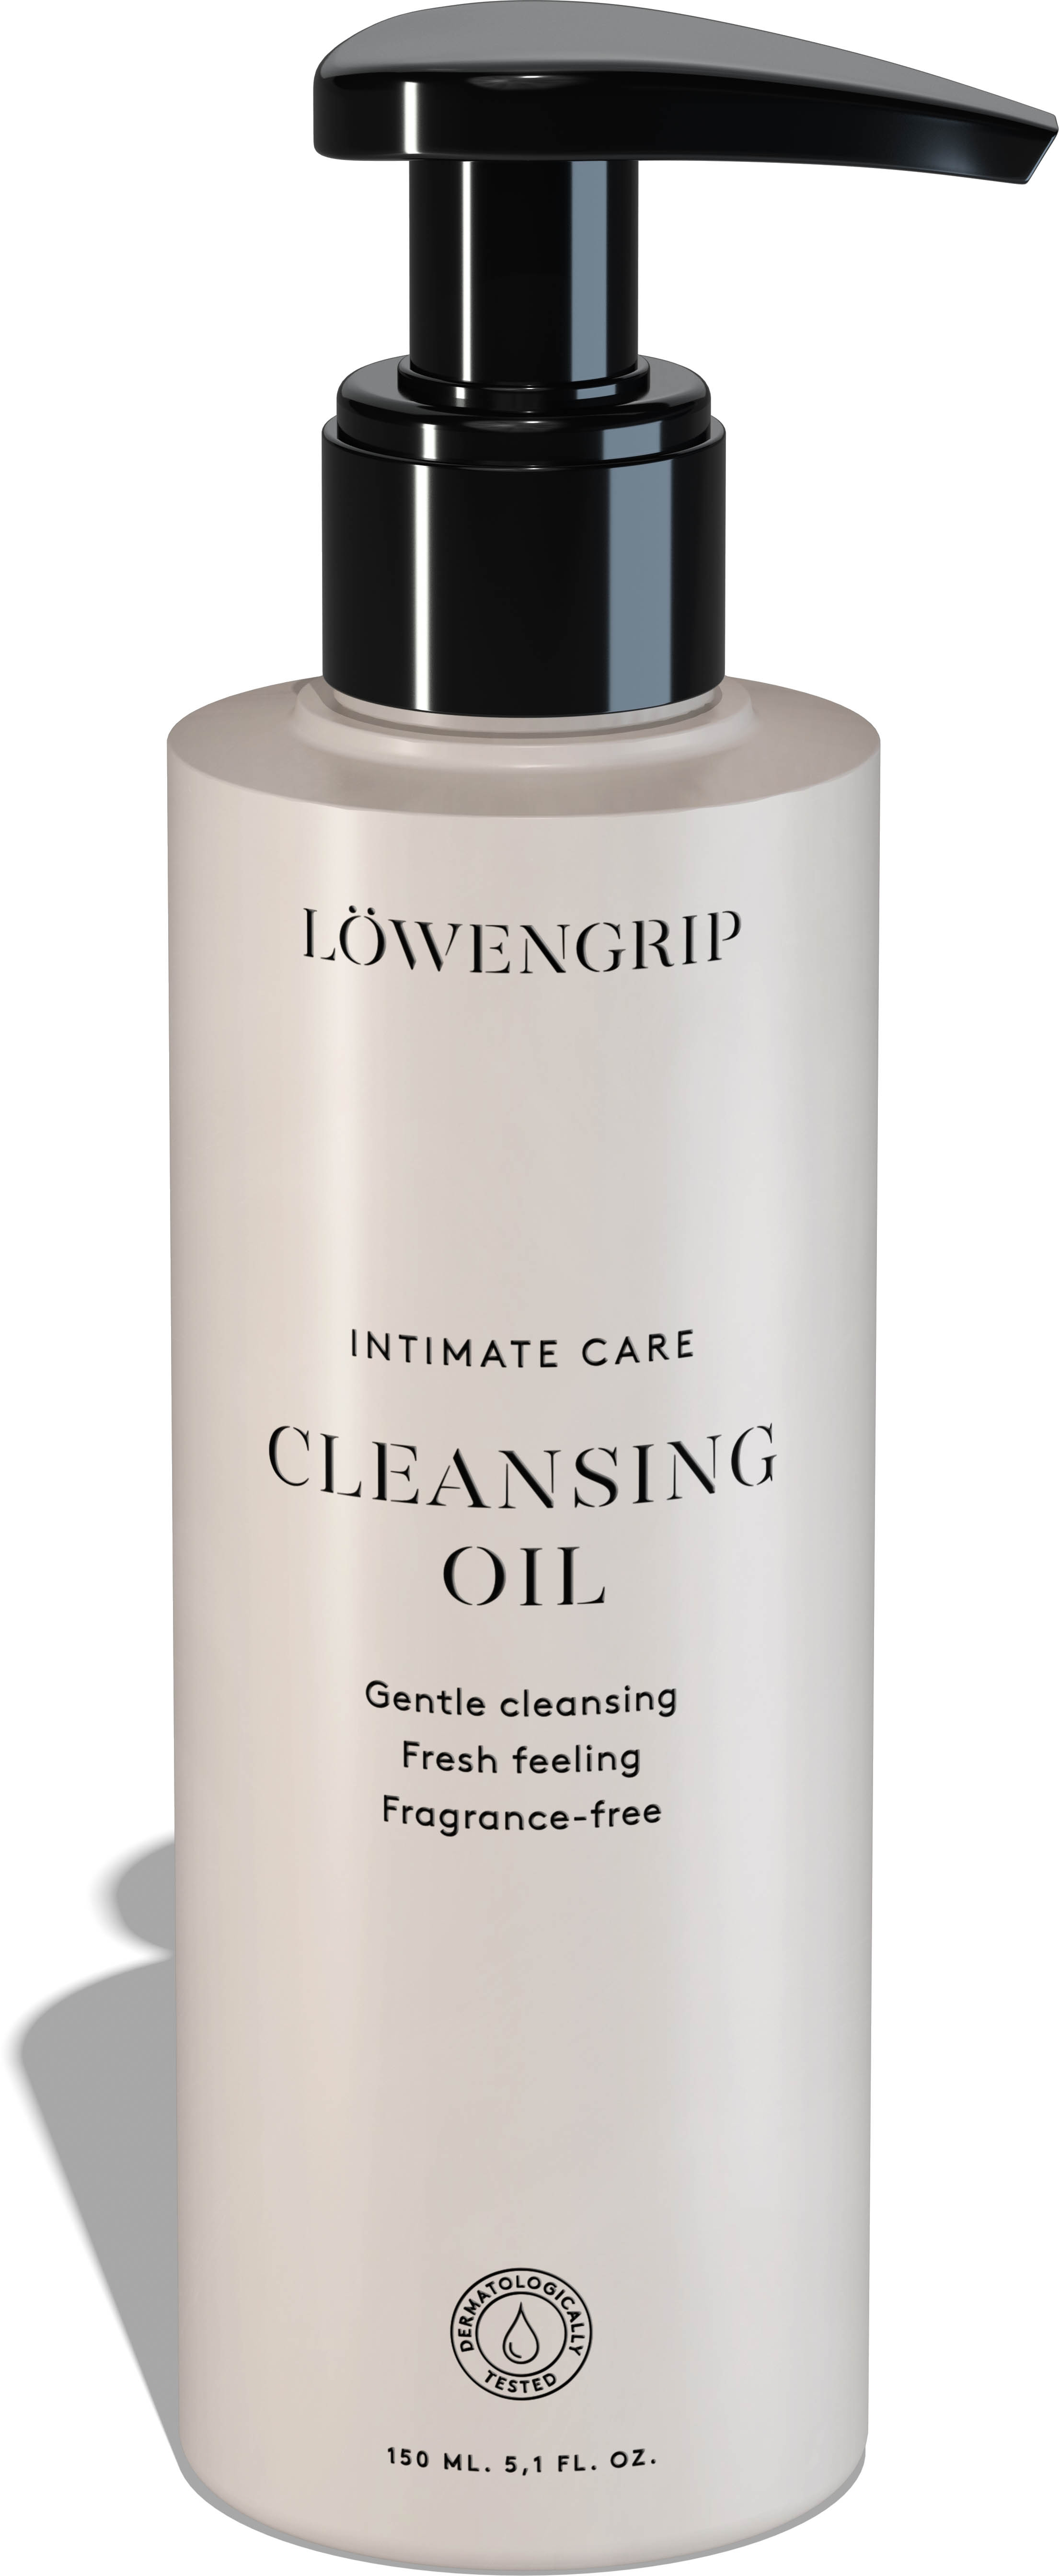 Intimate Care - Cleansing Oil 150 ml